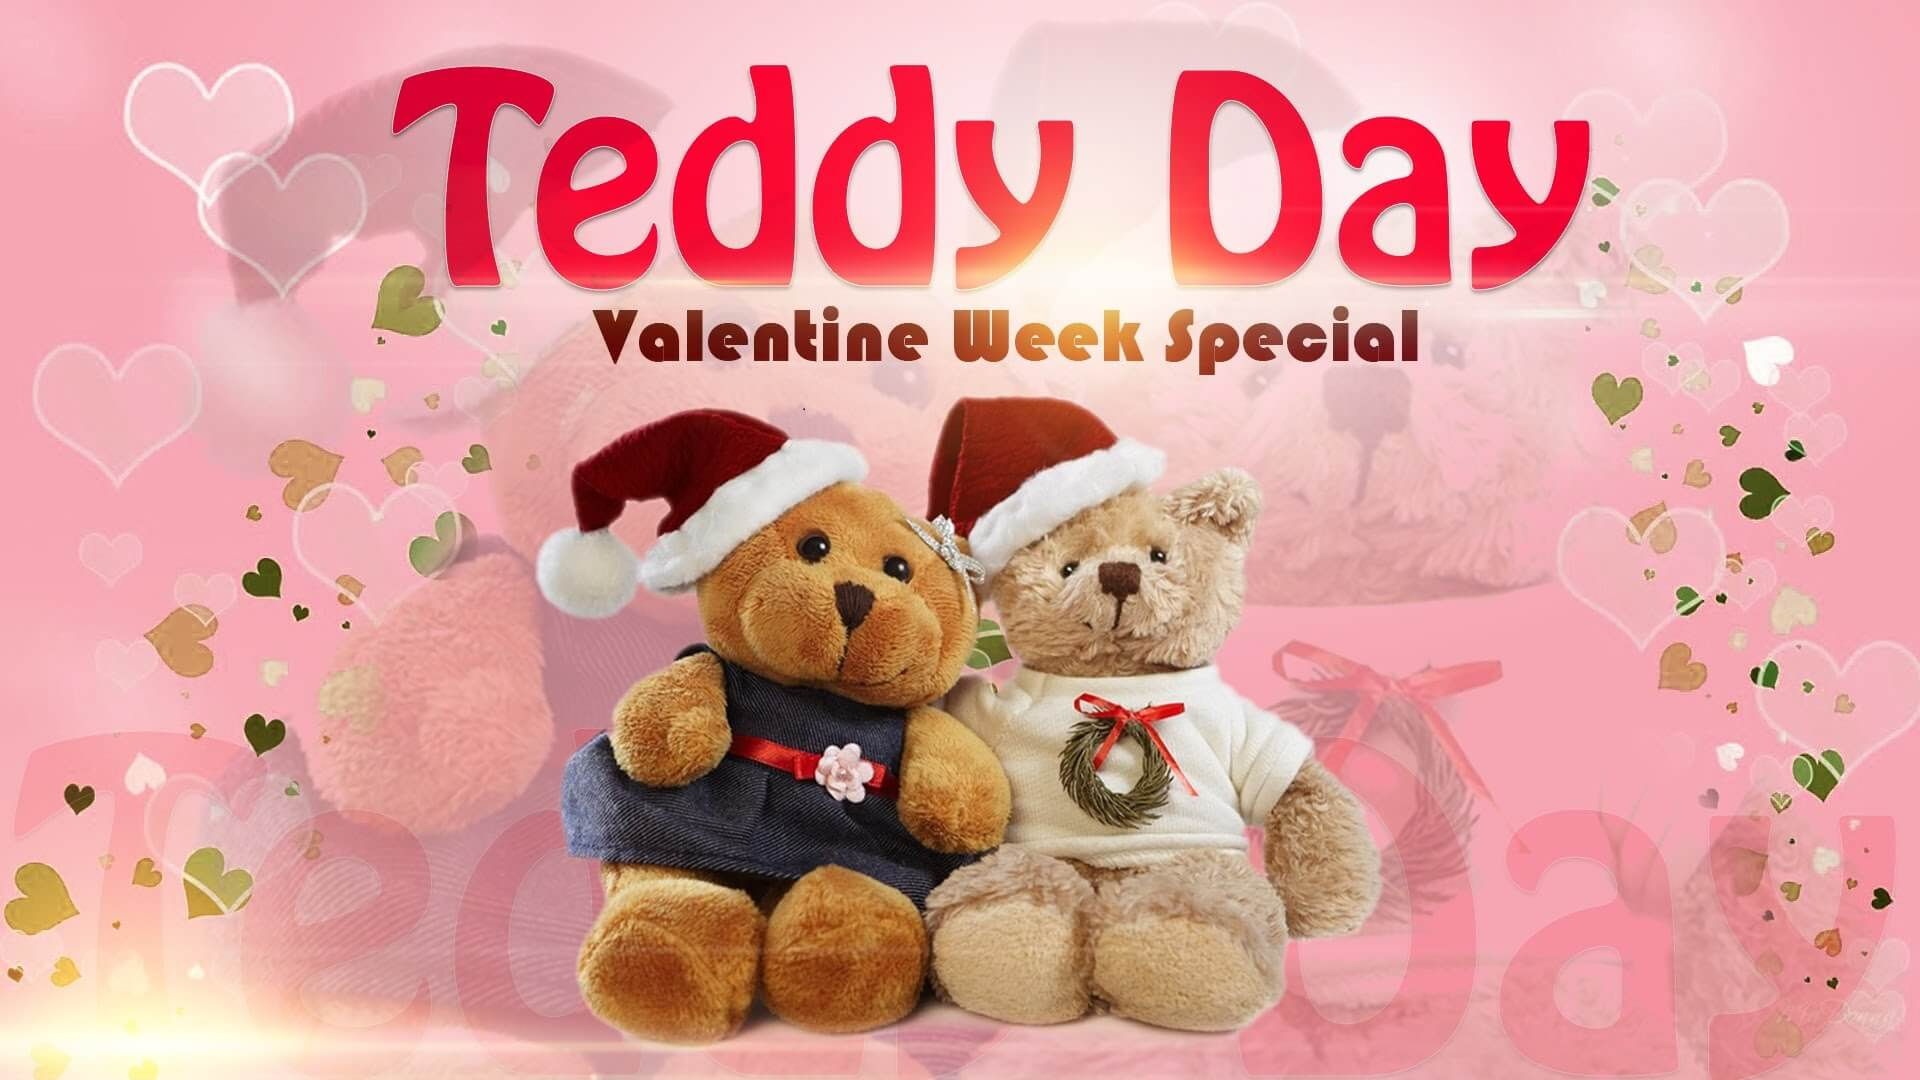 happy teddy day wishes bear couples valentines week feb 10th hd wallpaper